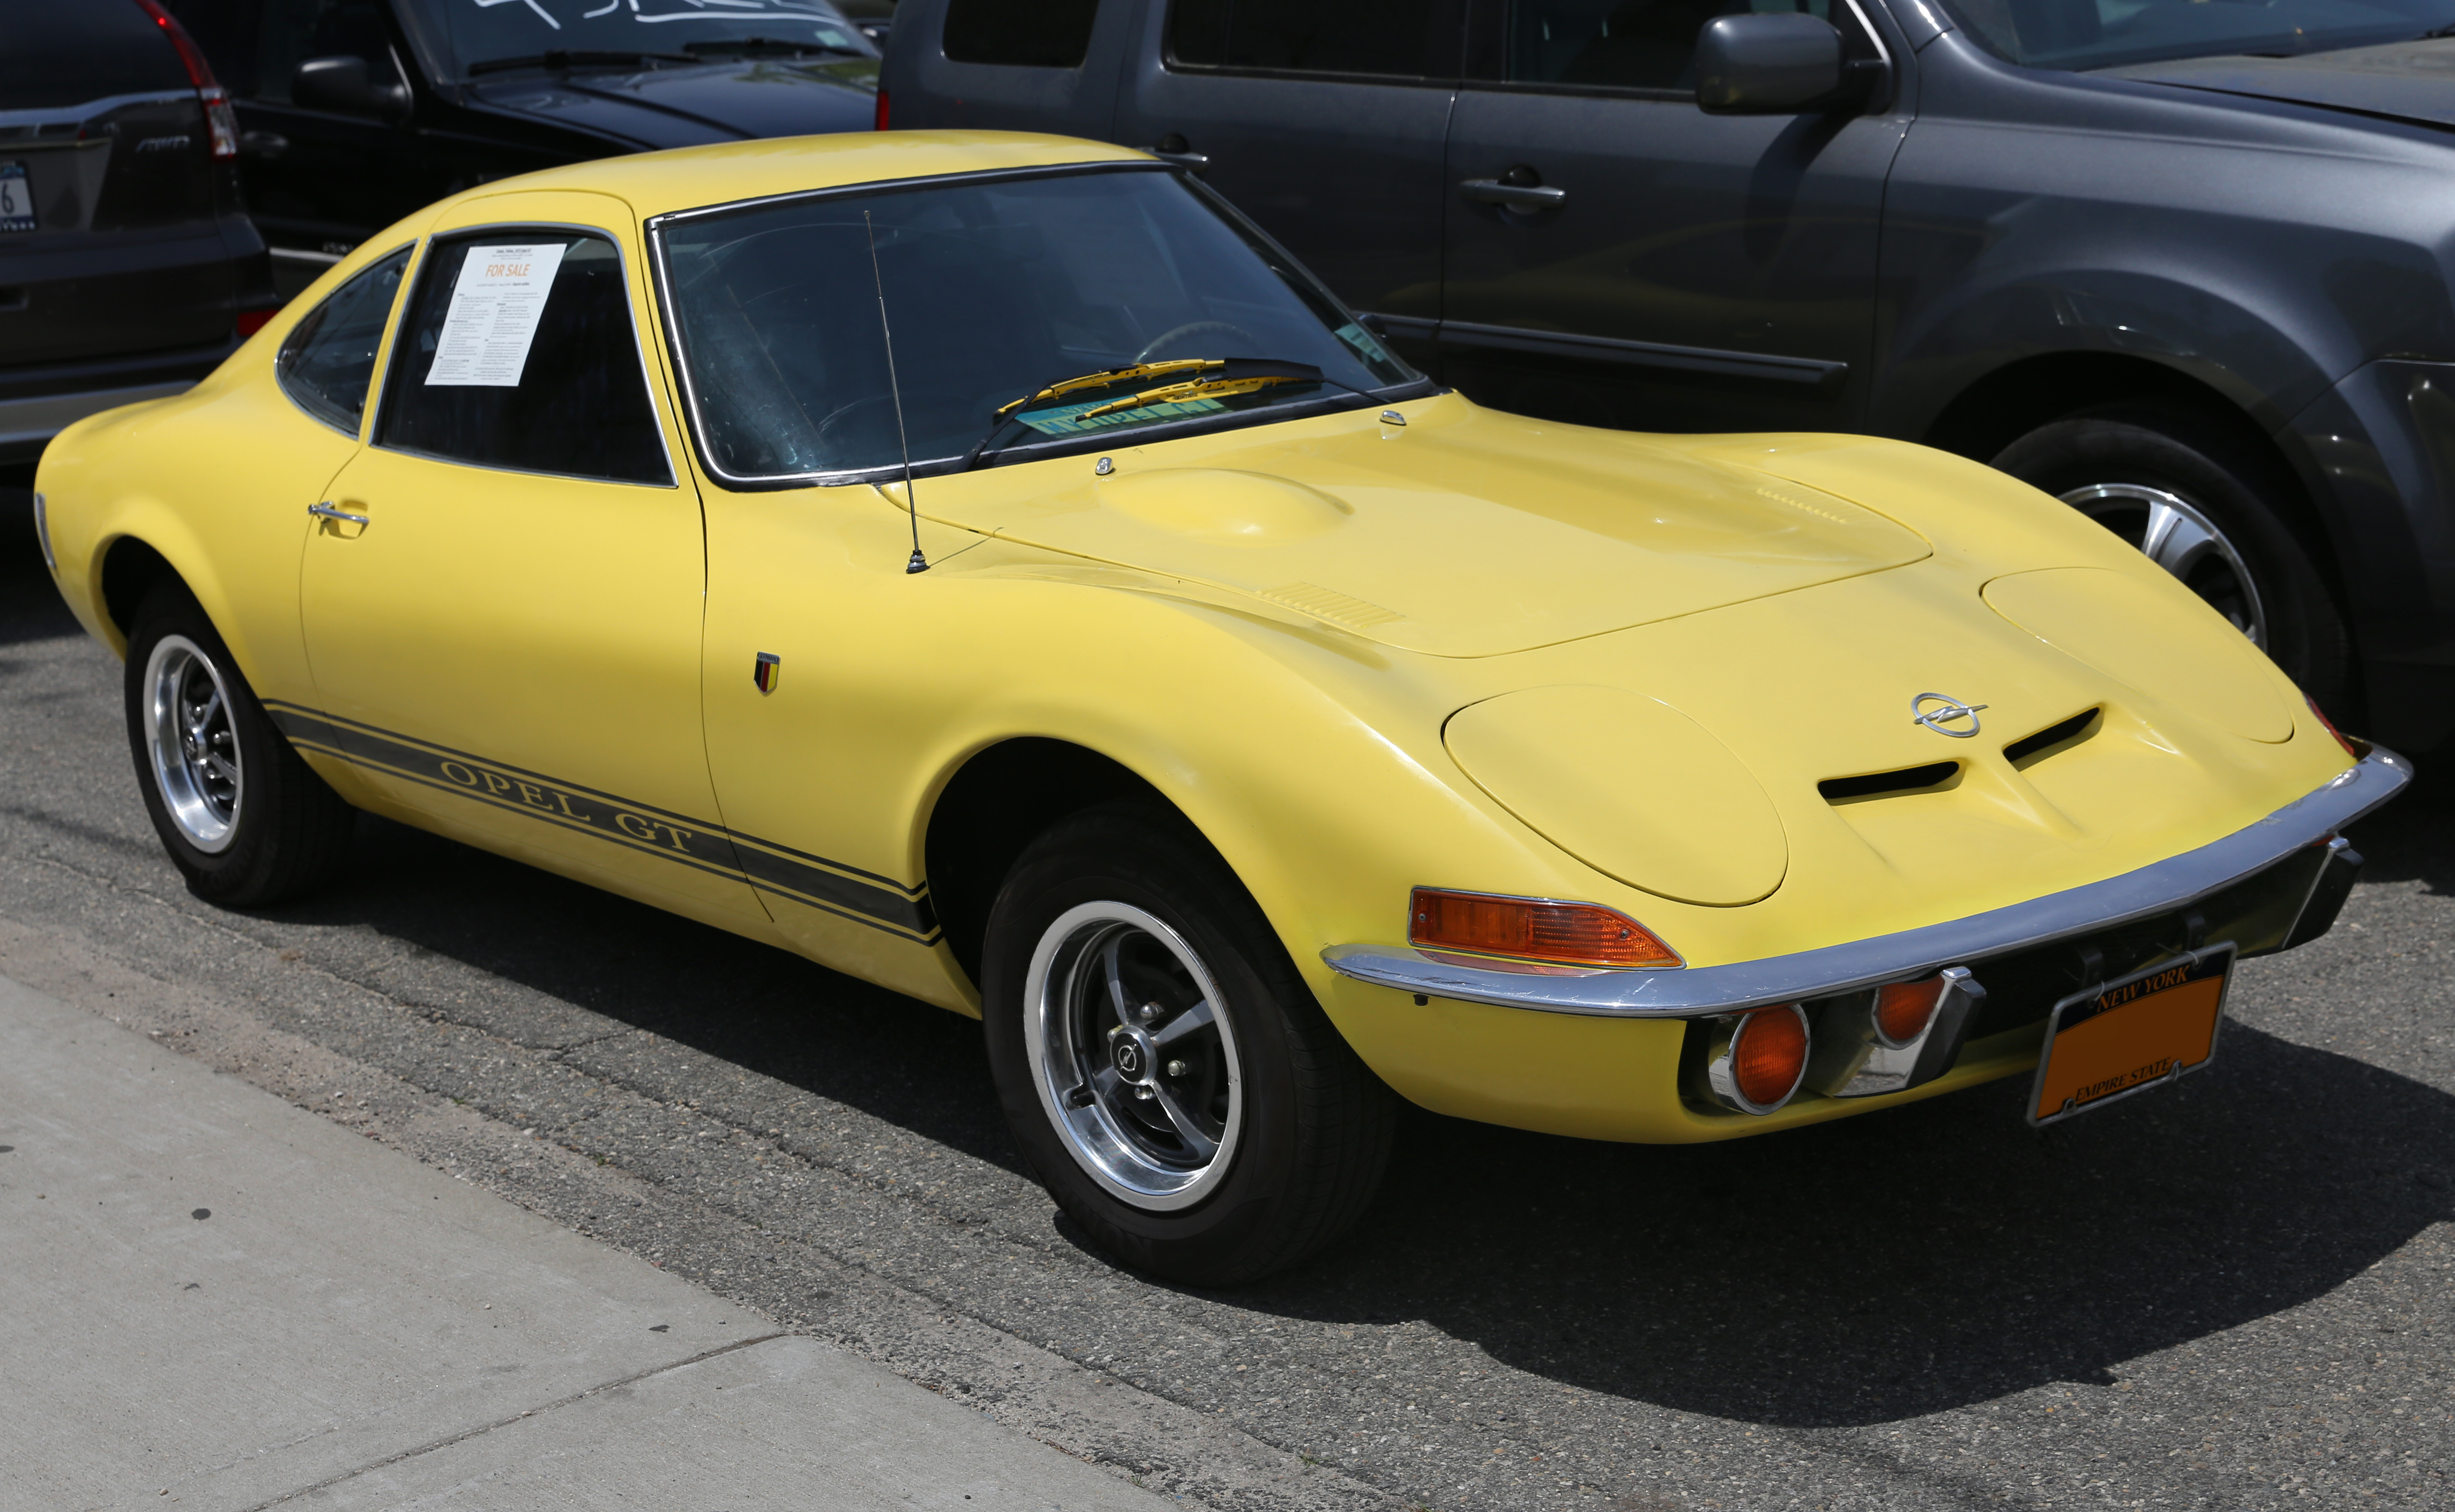 File:1973 Opel GT (1900, US) front right.jpg - Wikimedia Commons